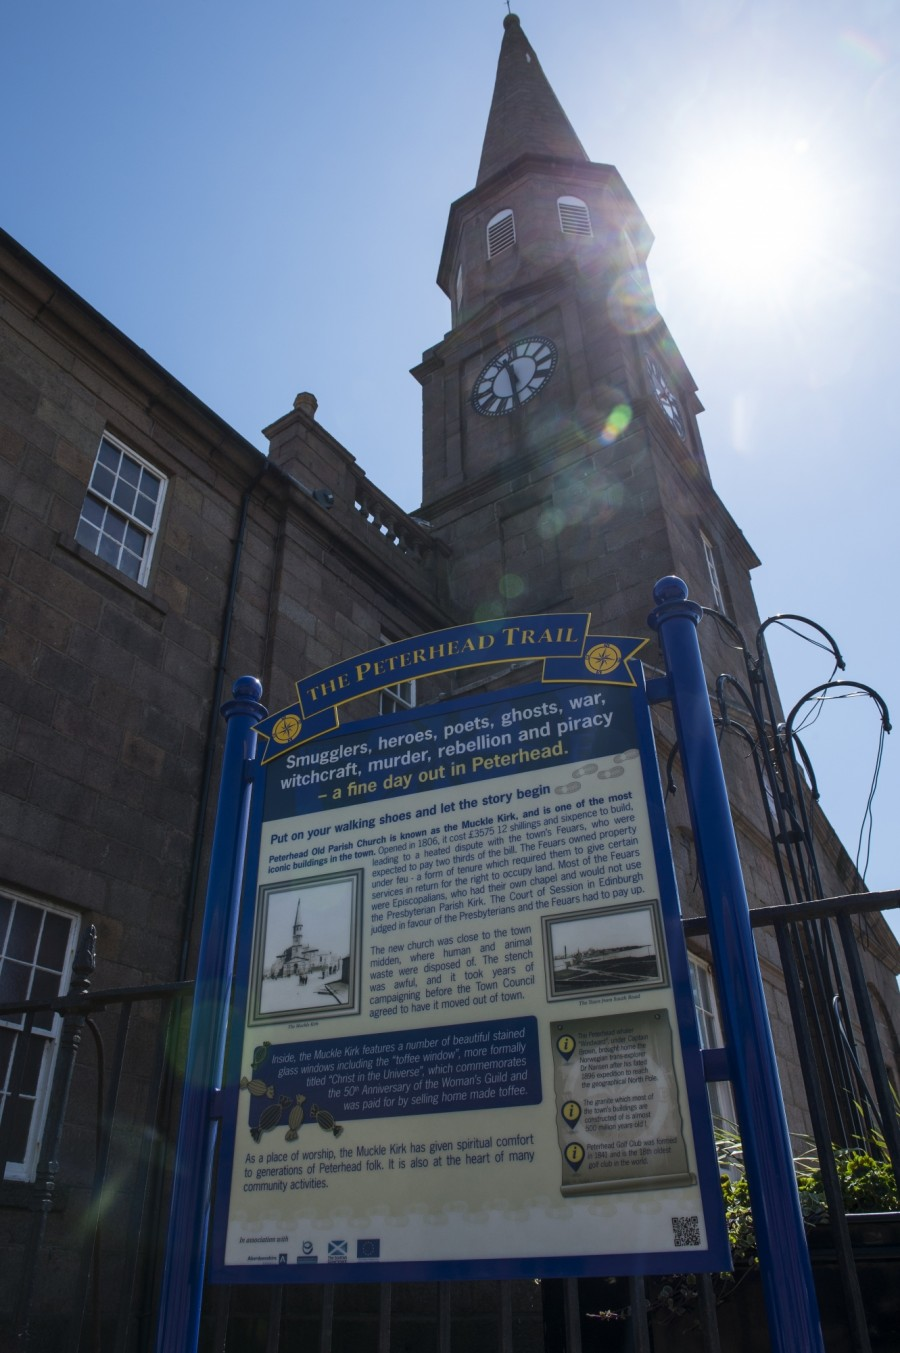 The Muckle Kirk - starting point of the Peterhead Trail